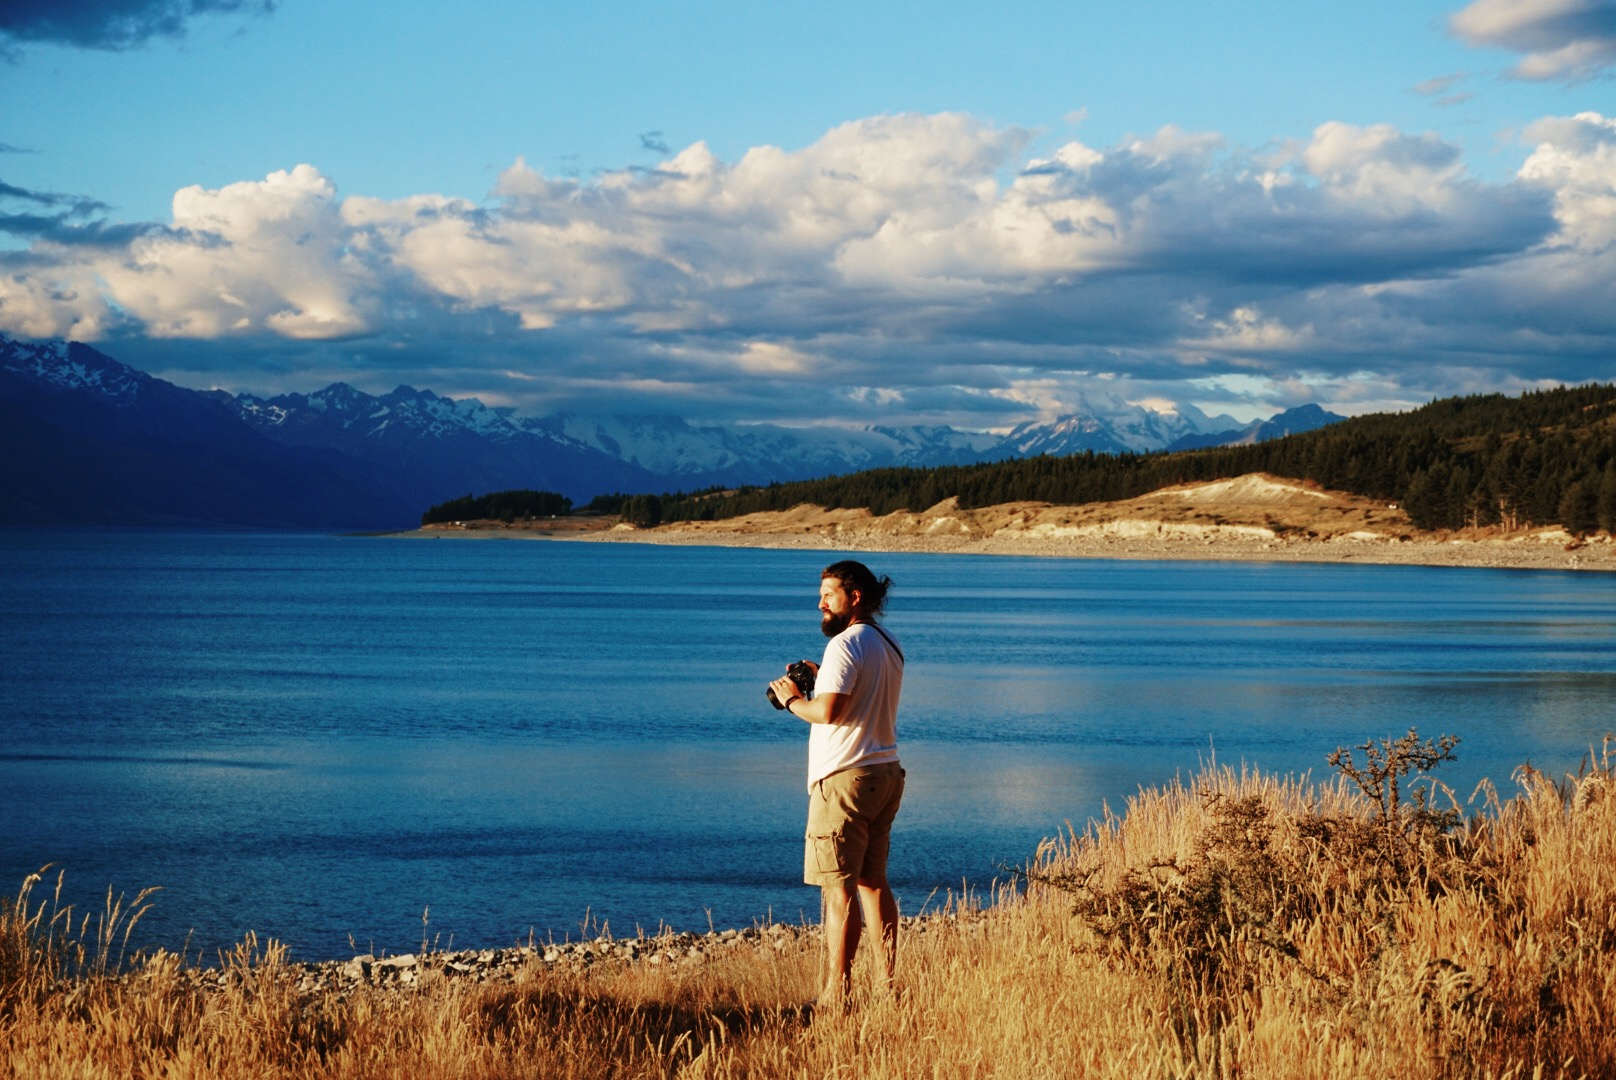 Lake Pukaki and Mt. Cook